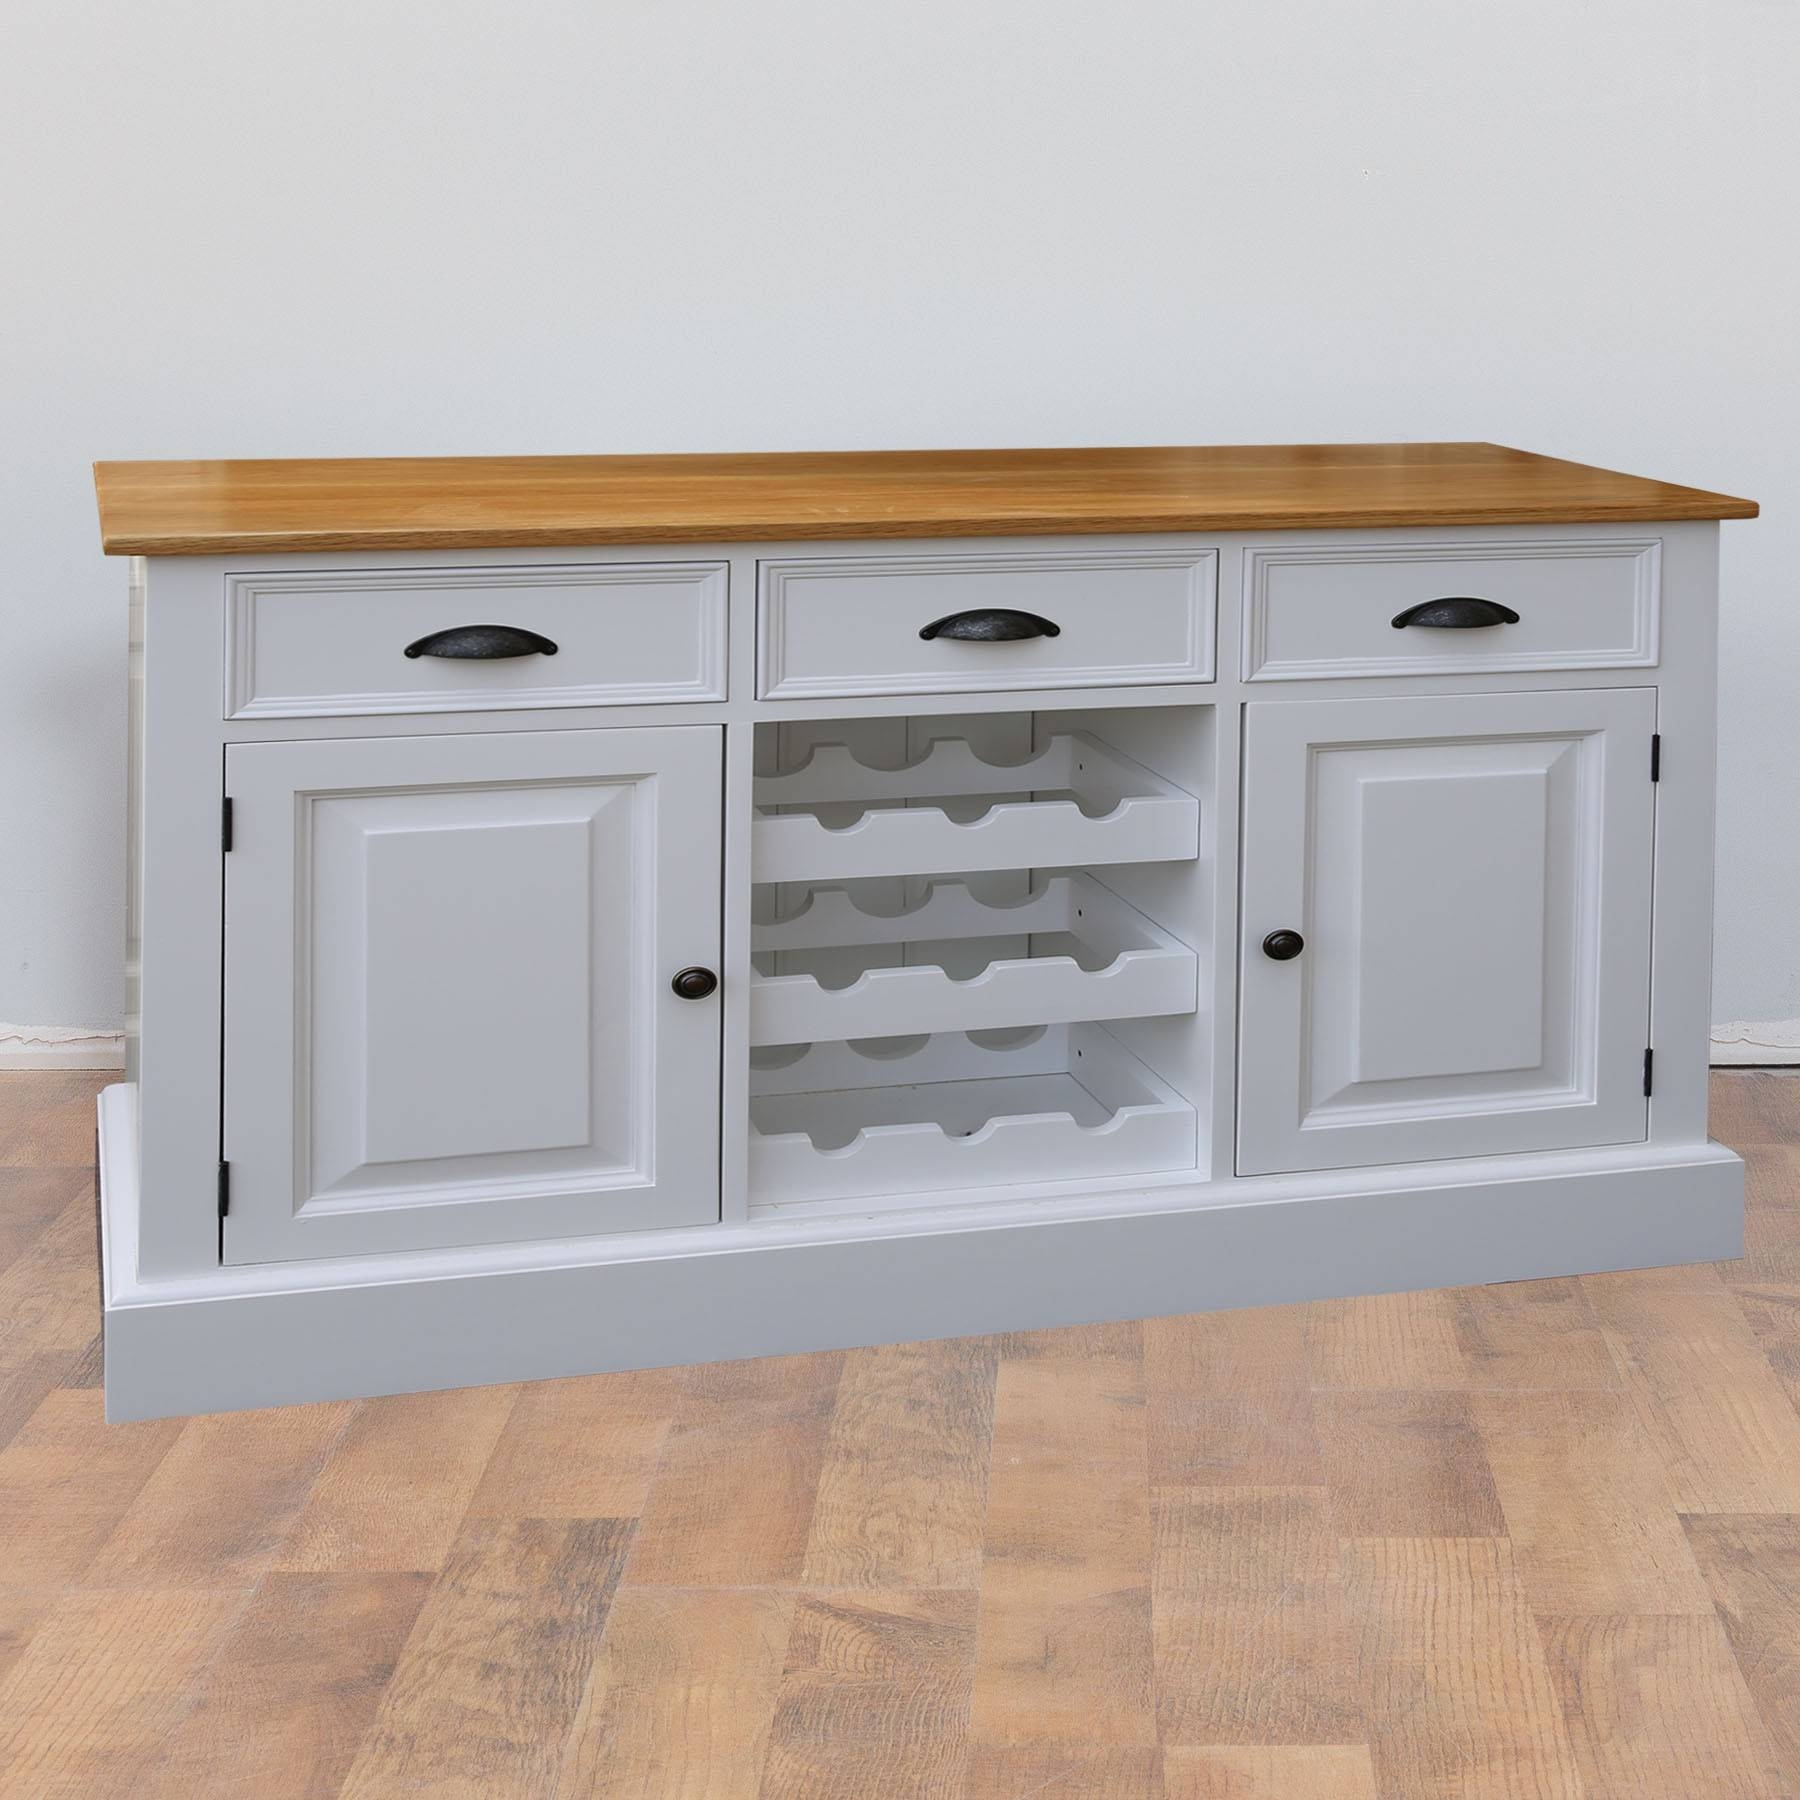 Mottisfont Solid Pine Painted Provence Sideboard | Furniture4Yourhome throughout Sideboards for Sale (Image 14 of 30)